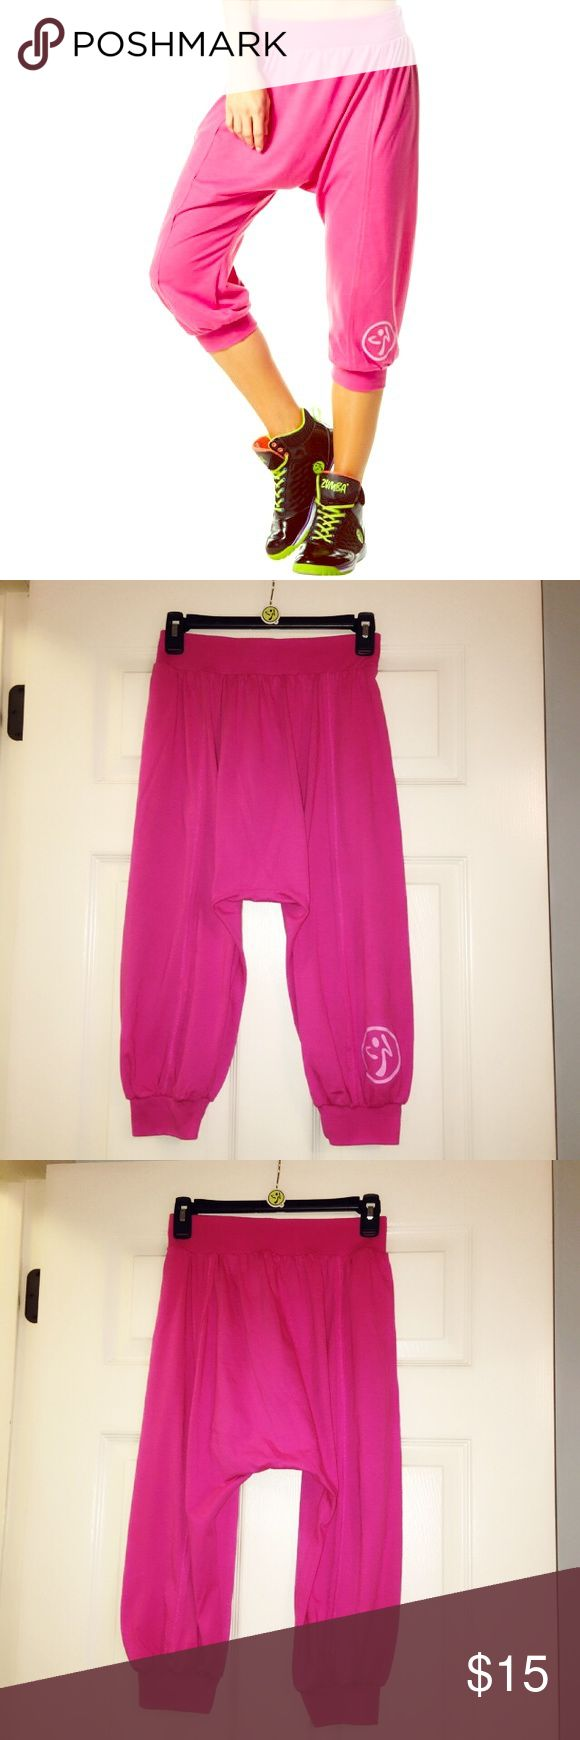 Zumba™ Pink Harem Capri Pants - Size X-Small 💃🏻 Check out these comfy Zumba™ Hang Loose Harem Capri Pant. These pants give a slouchy, but sassy silhouette that provides you room to groove, while the elastic waistband keeps your pants in place as you shuffle across the floor. They are size X-Small. Material: 65% Polyester, 35% Cotton. Zumba™ Pants Capris